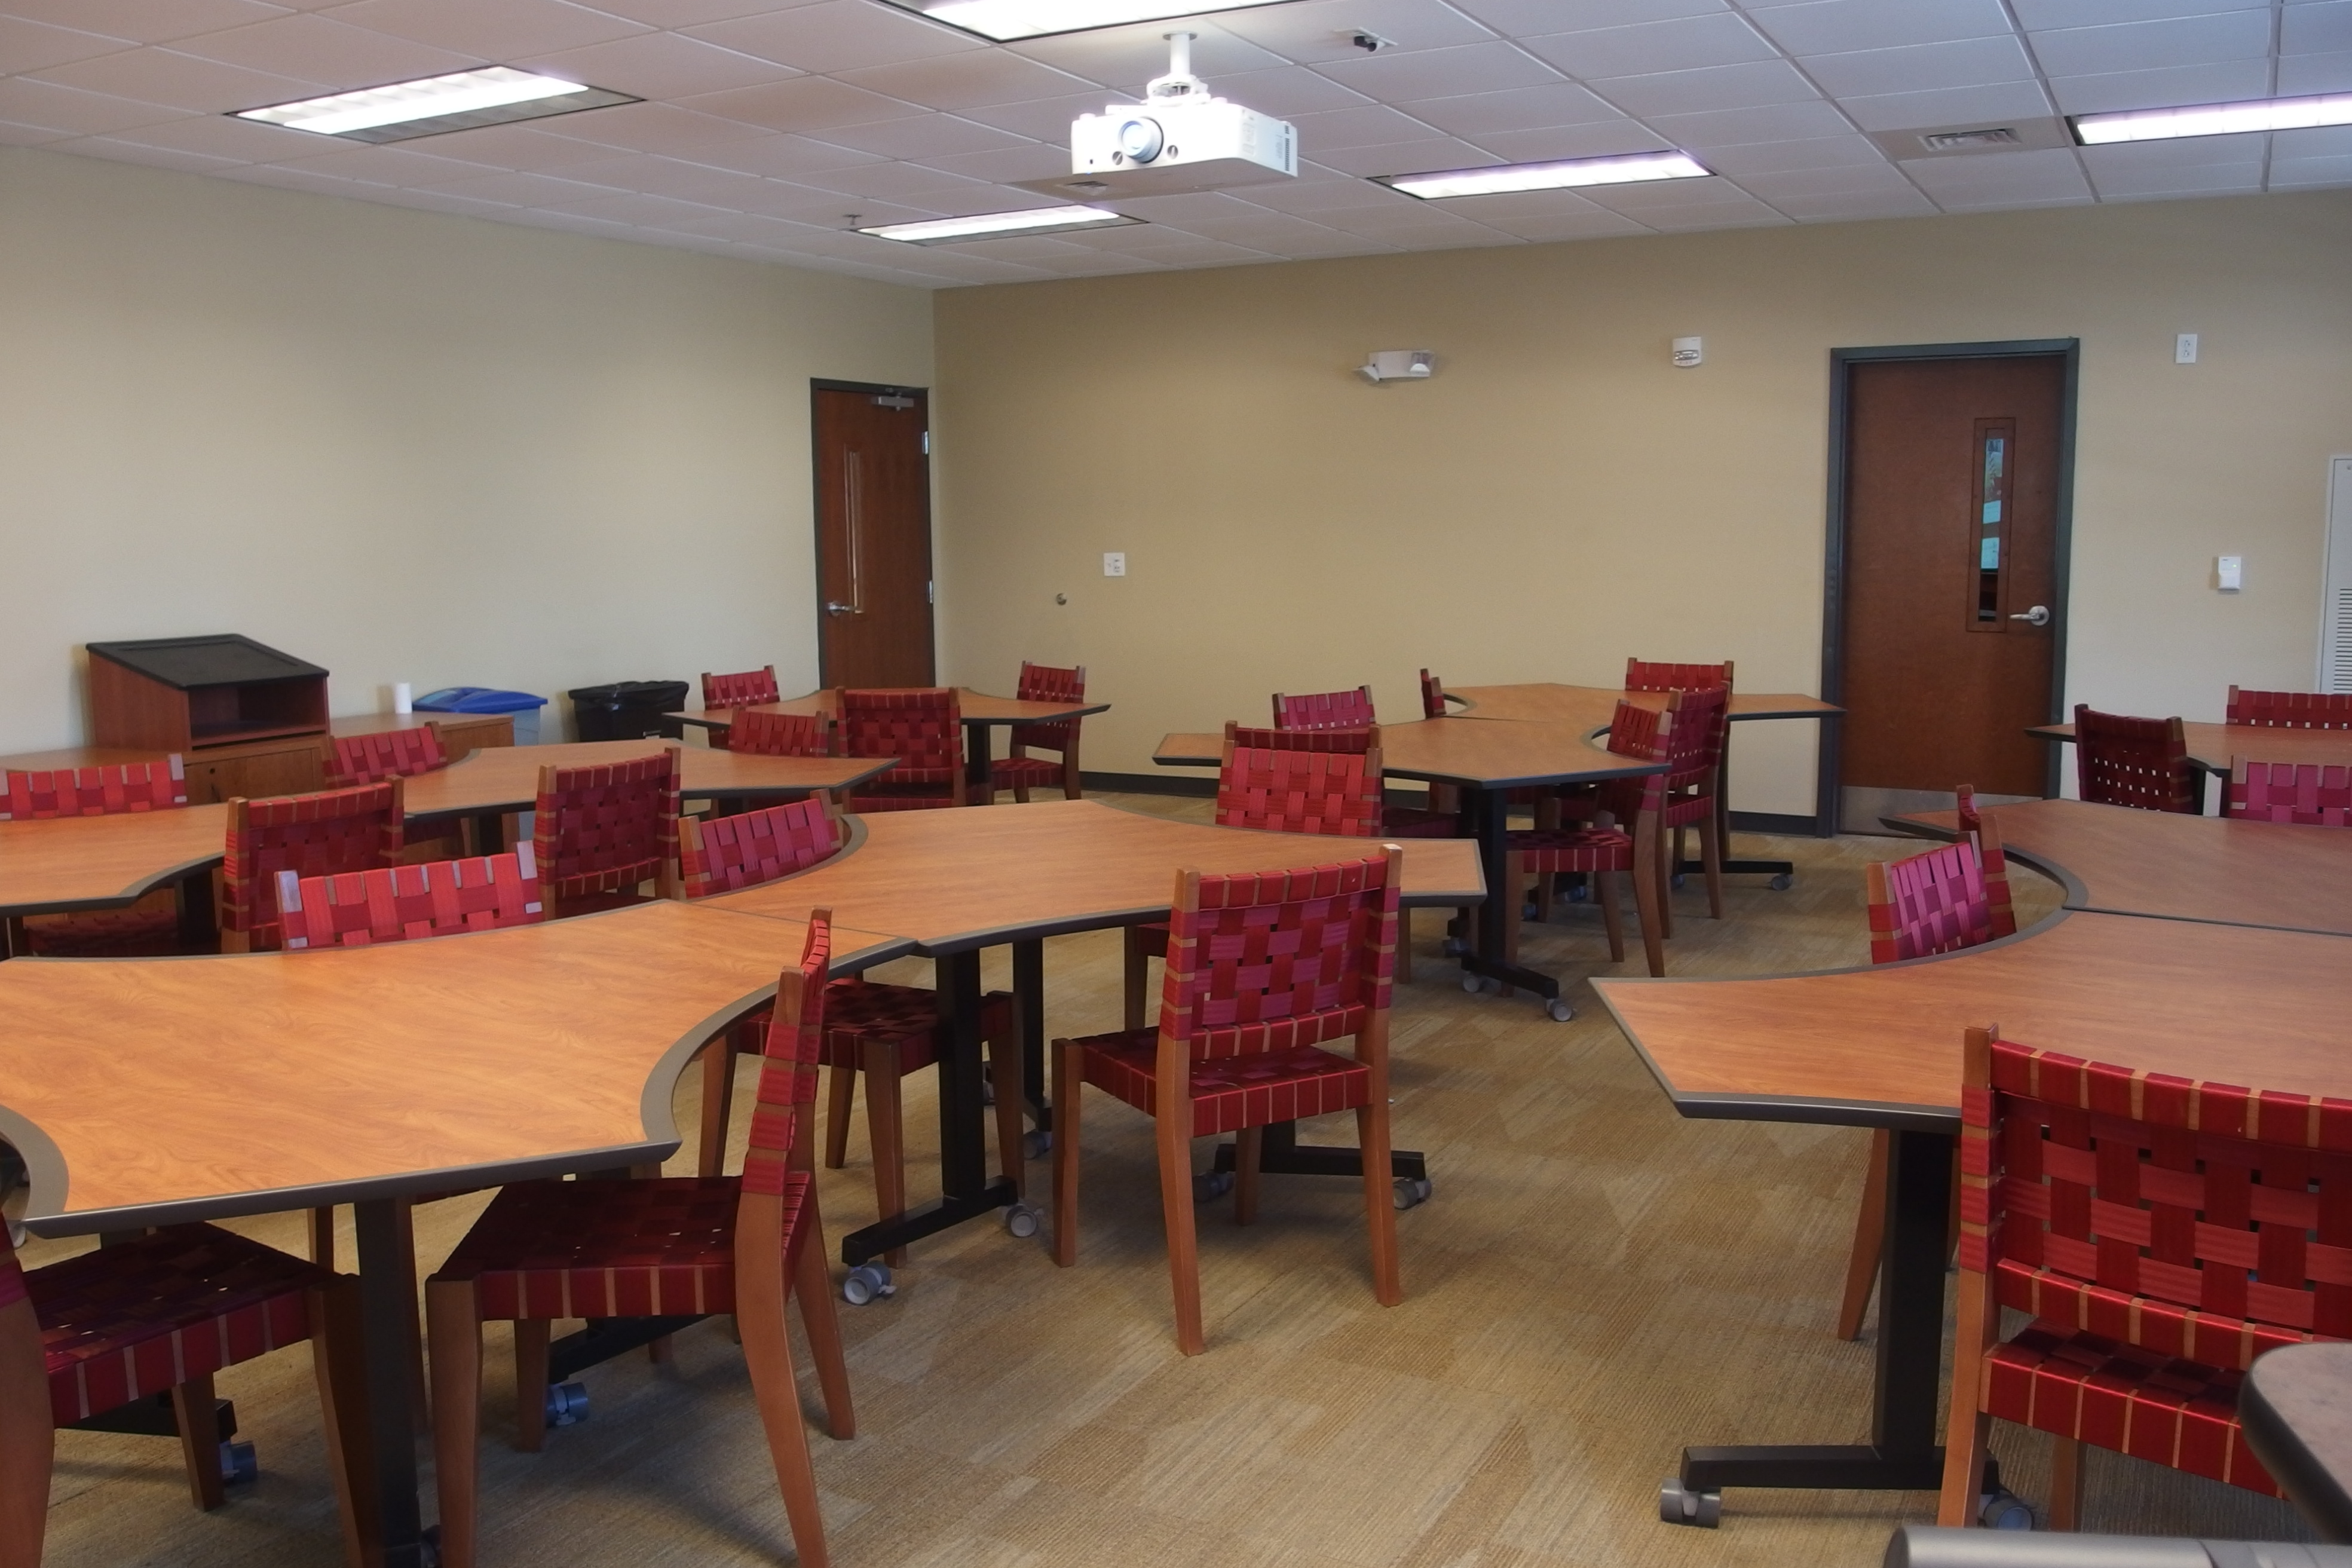 Photo of clasrrom 114 in global e taken from the front right corner of the classroom showing student working tables and chairs